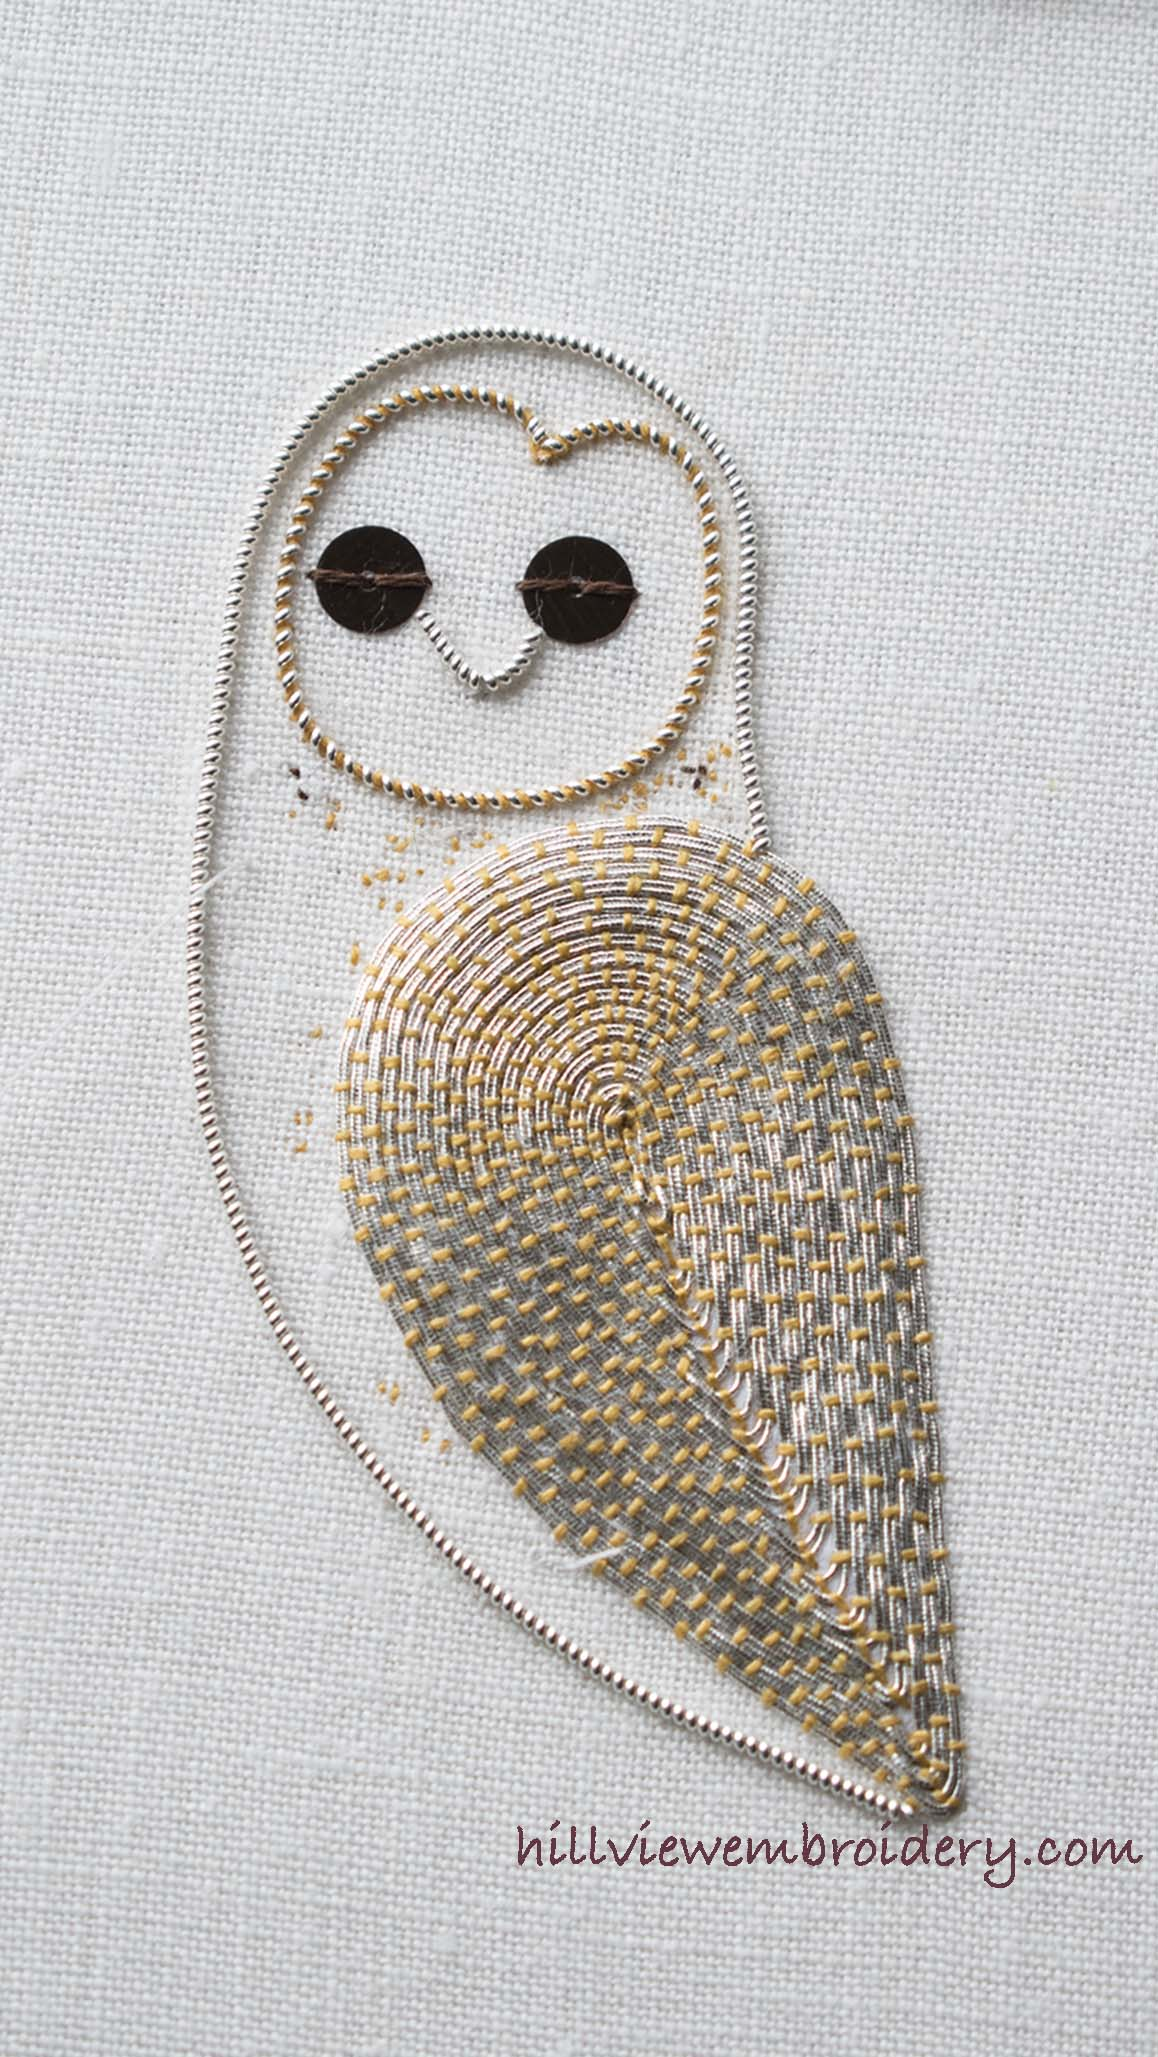 The owl's body is appearing. The body and face are stitched in pearl purl